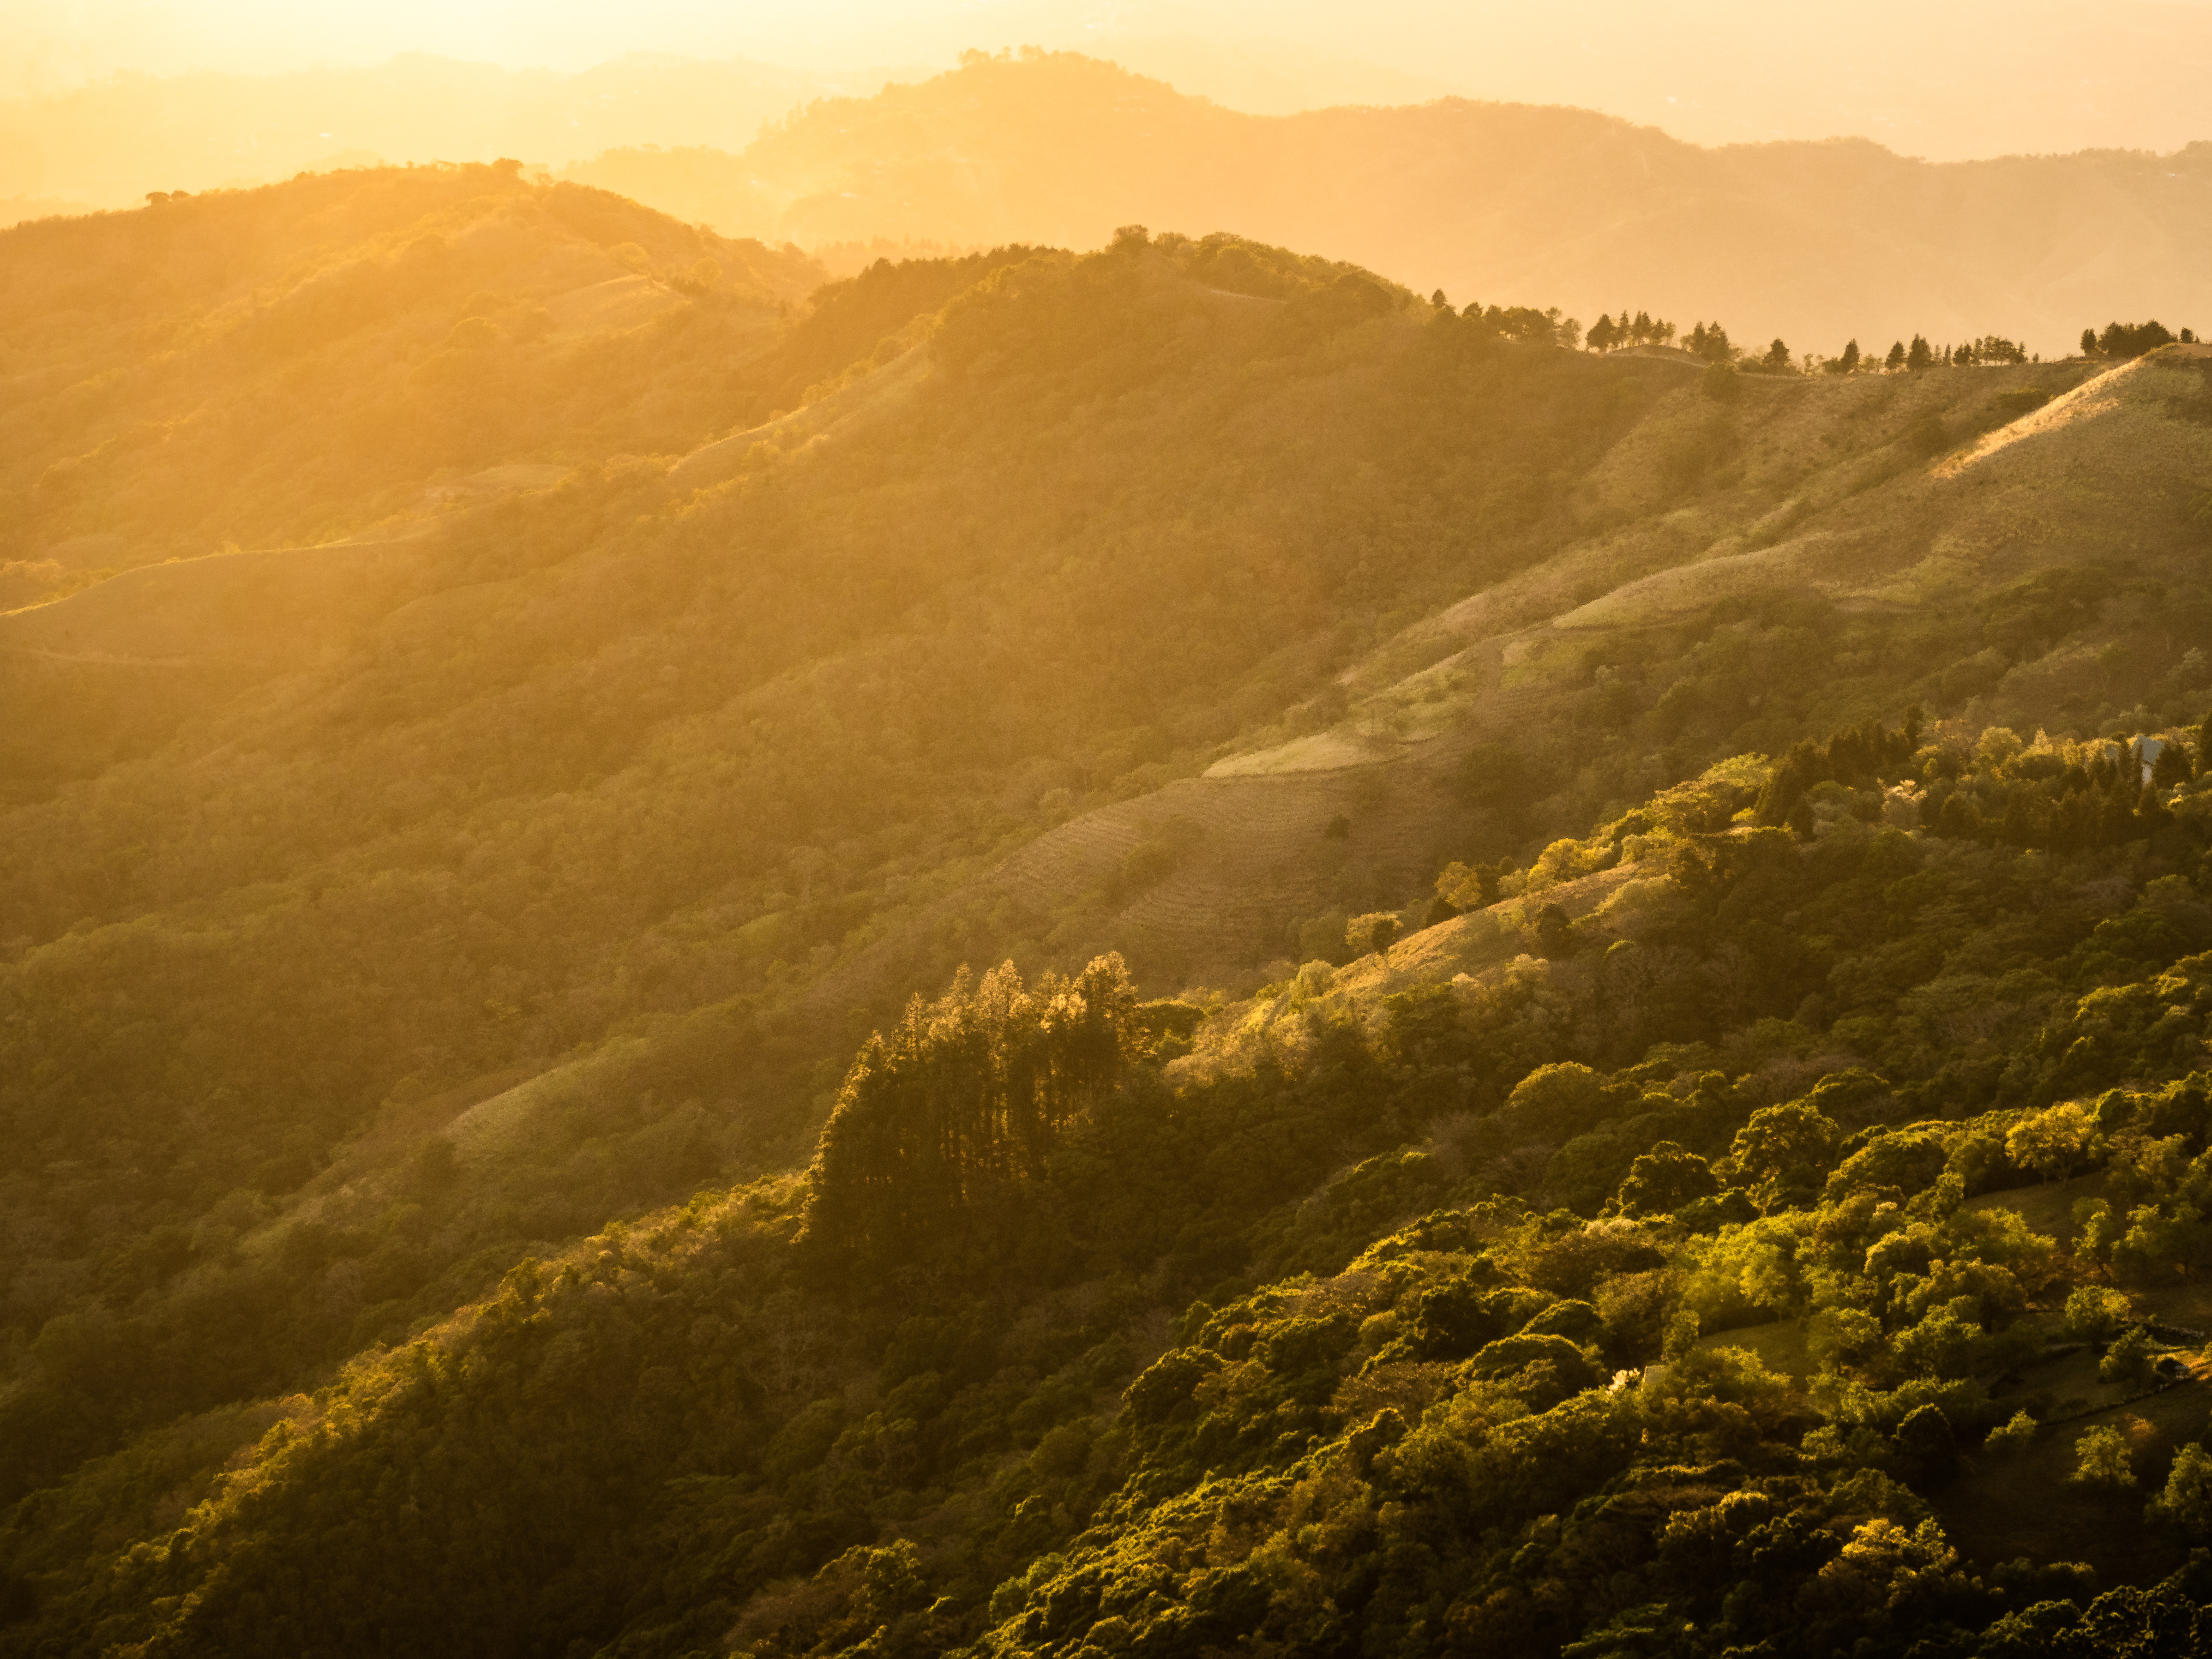 The sun sets over the hills of Santa Ana, Costa Rica